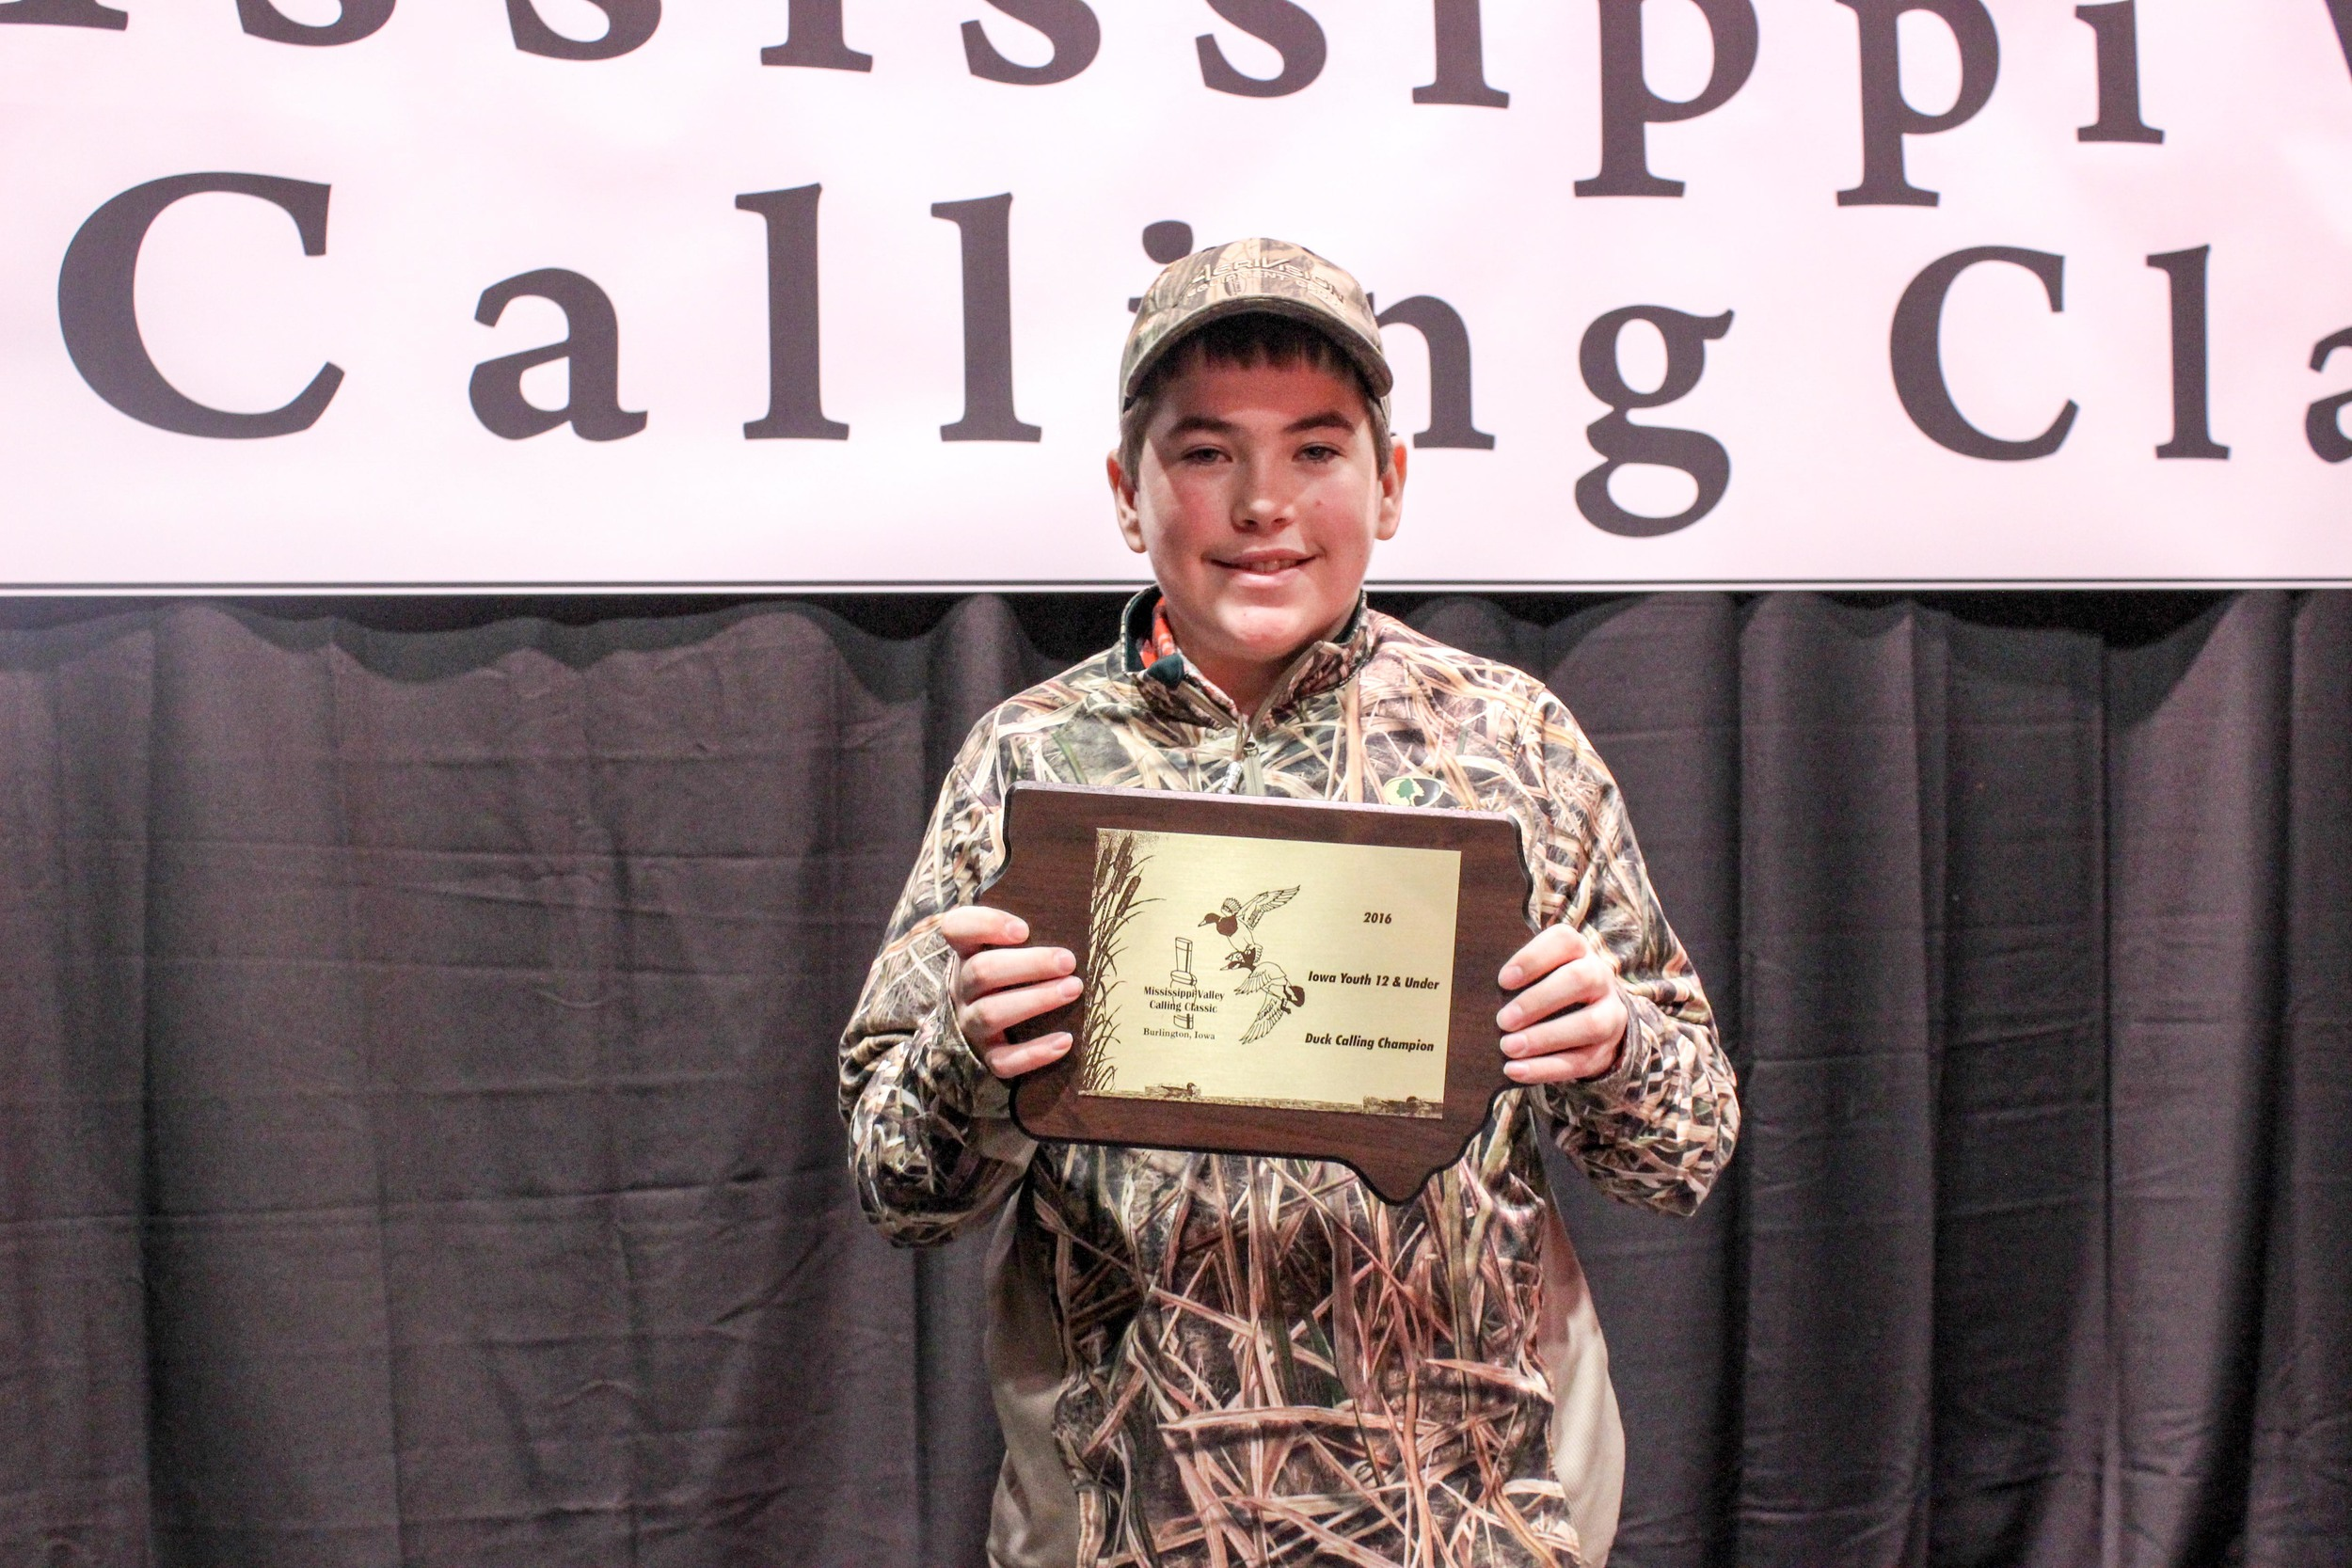 Cooper Harrison: 2016 Mississippi Valley Youth Duck Calling Champion: Junior Division